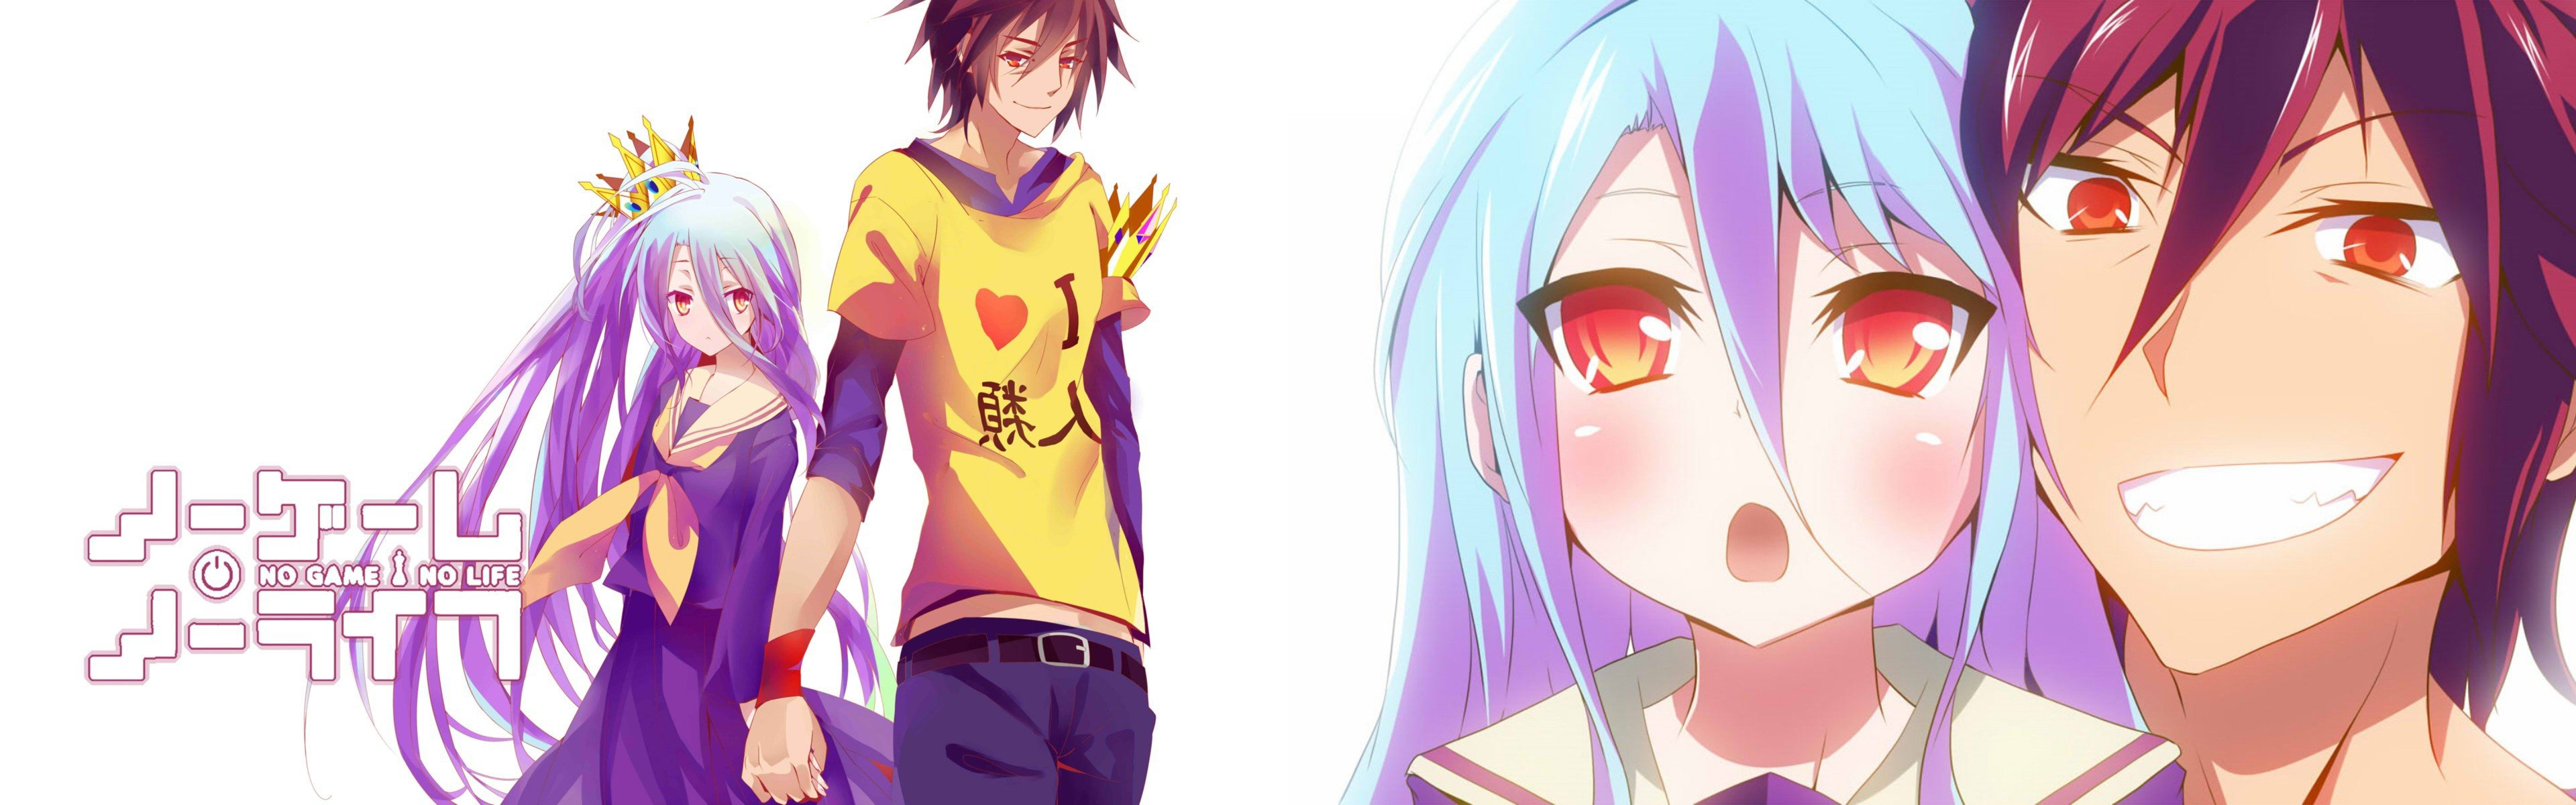 Free download No Game No Life background ID:102448 dual monitor 3840x1200 for desktop